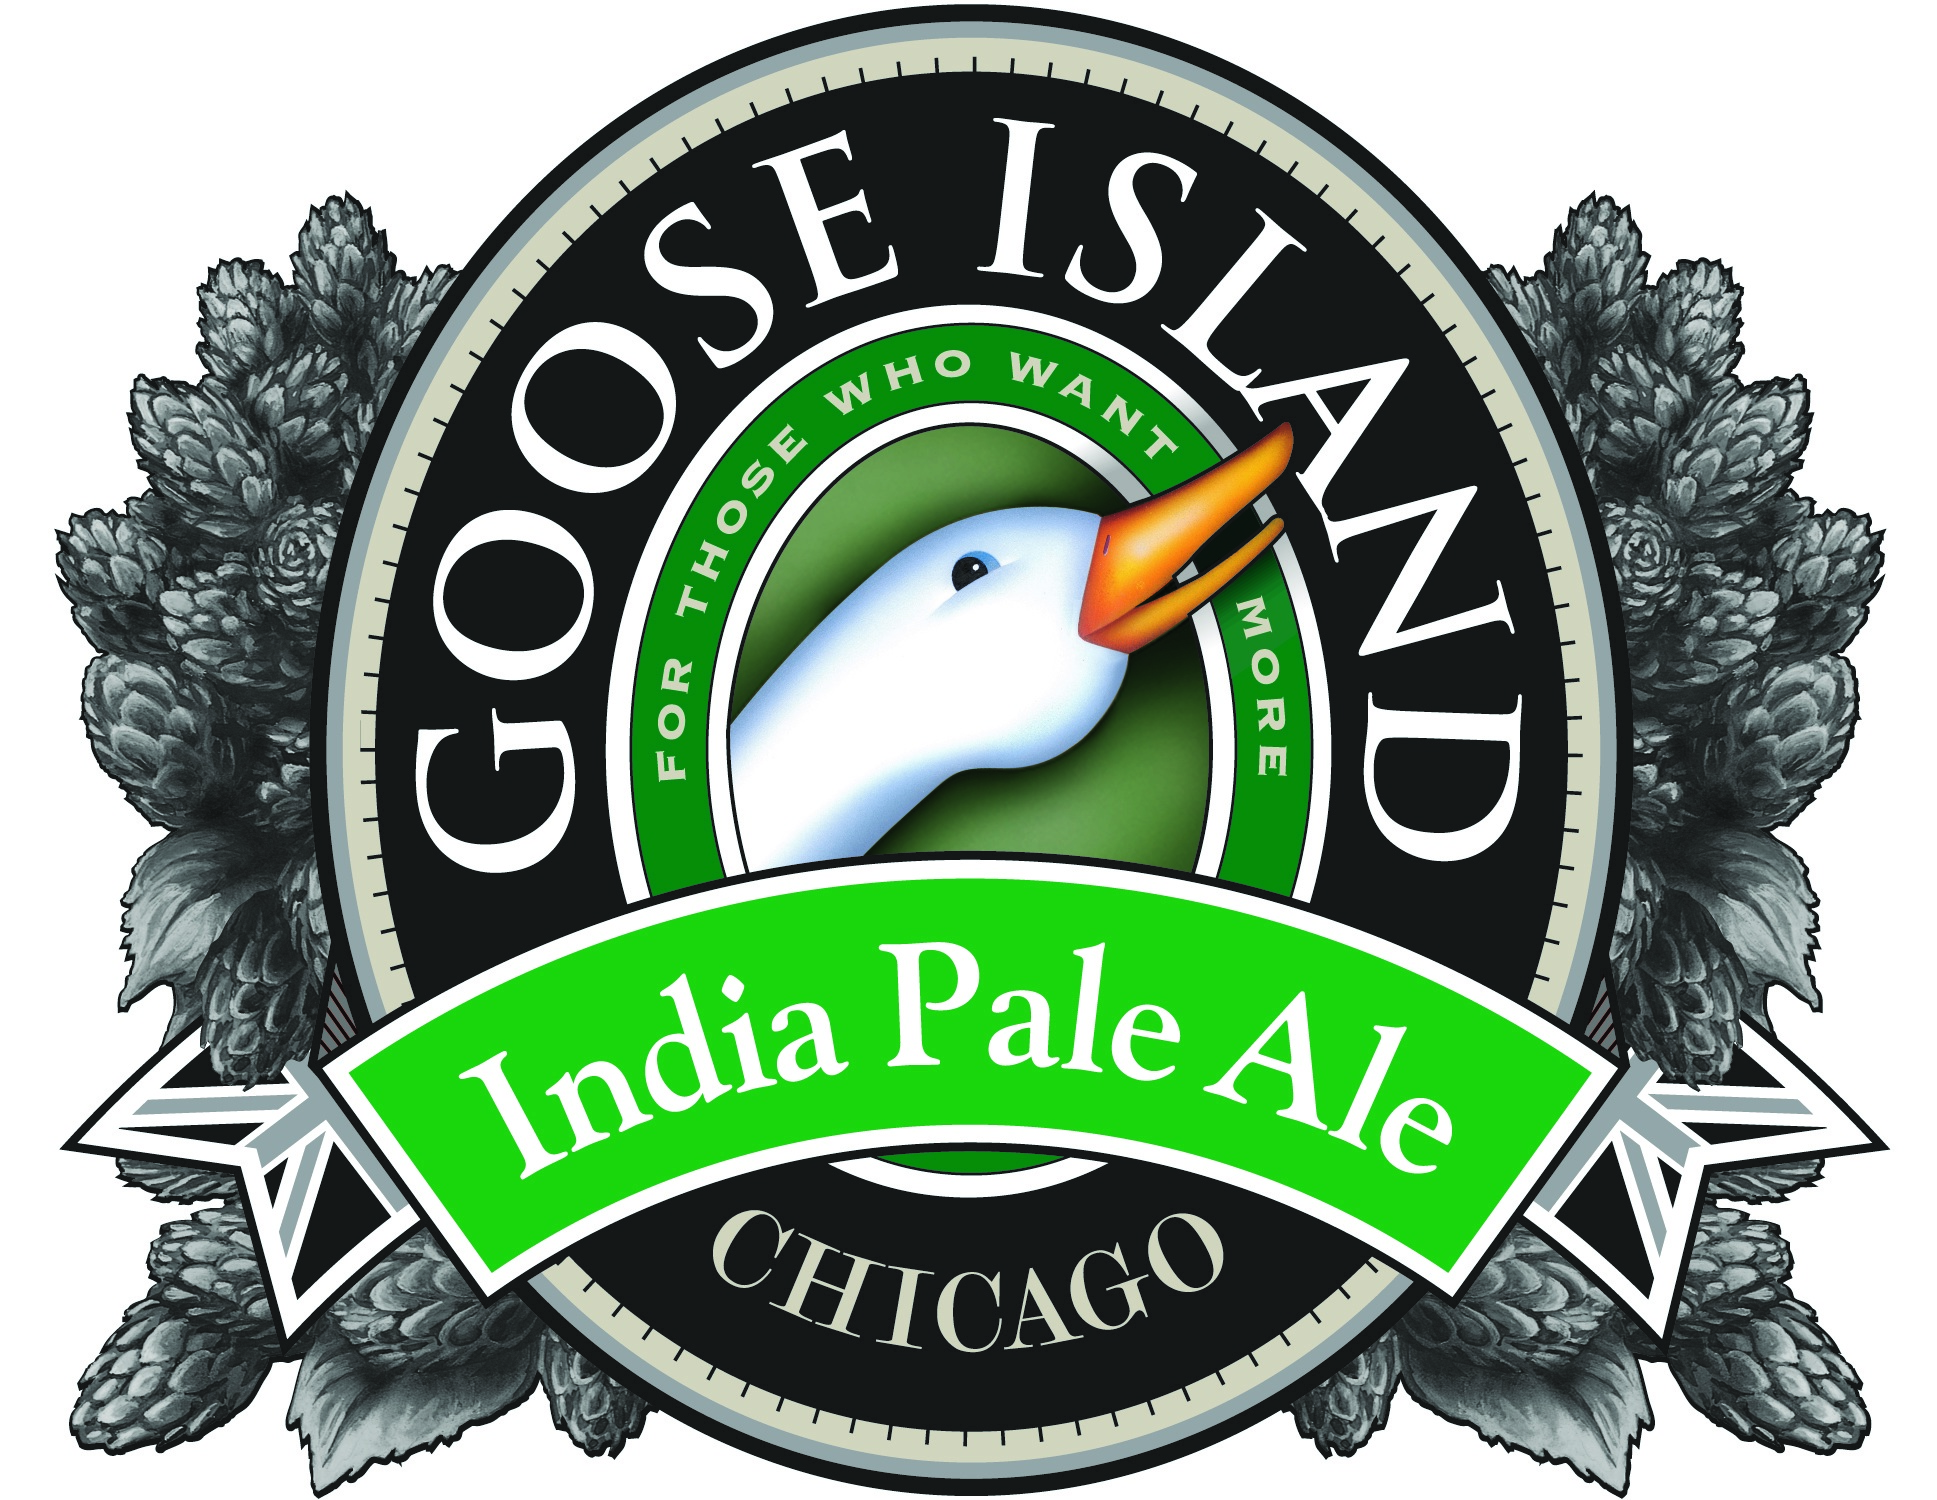 Is Goose Island A Craft Beer